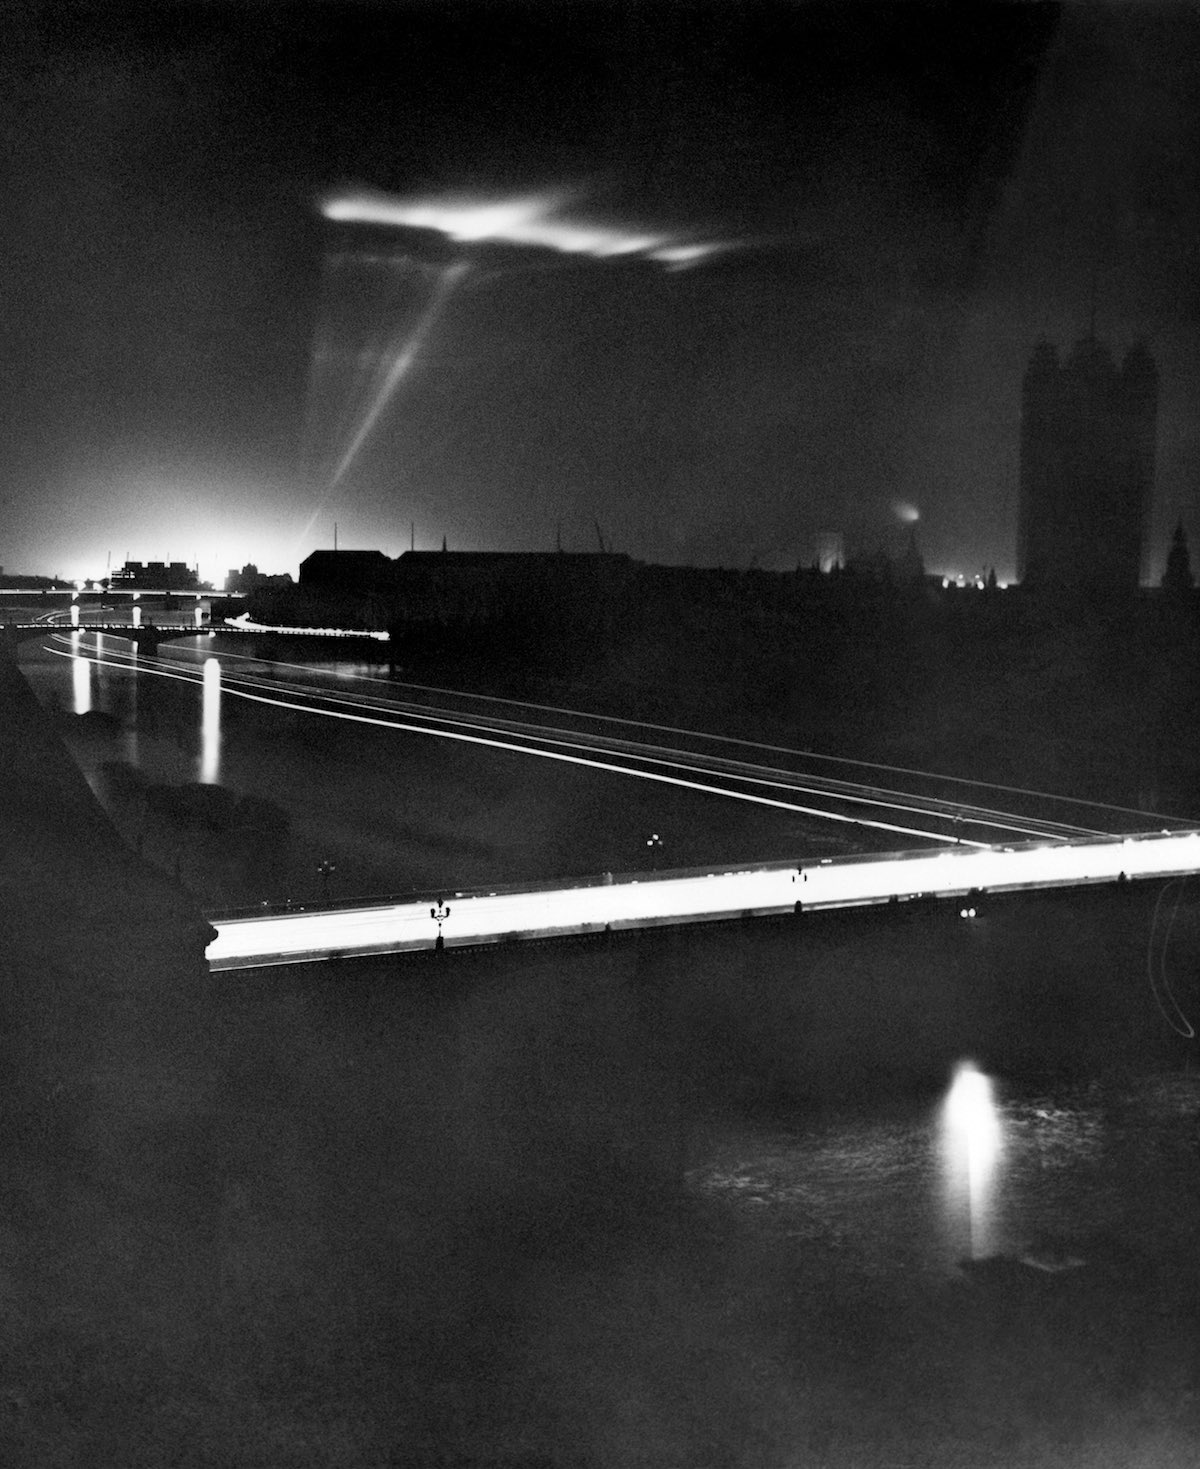 Blackout curtains ww2 - Retronaut Wwii Blackout In London During The Blitz 1939 1942